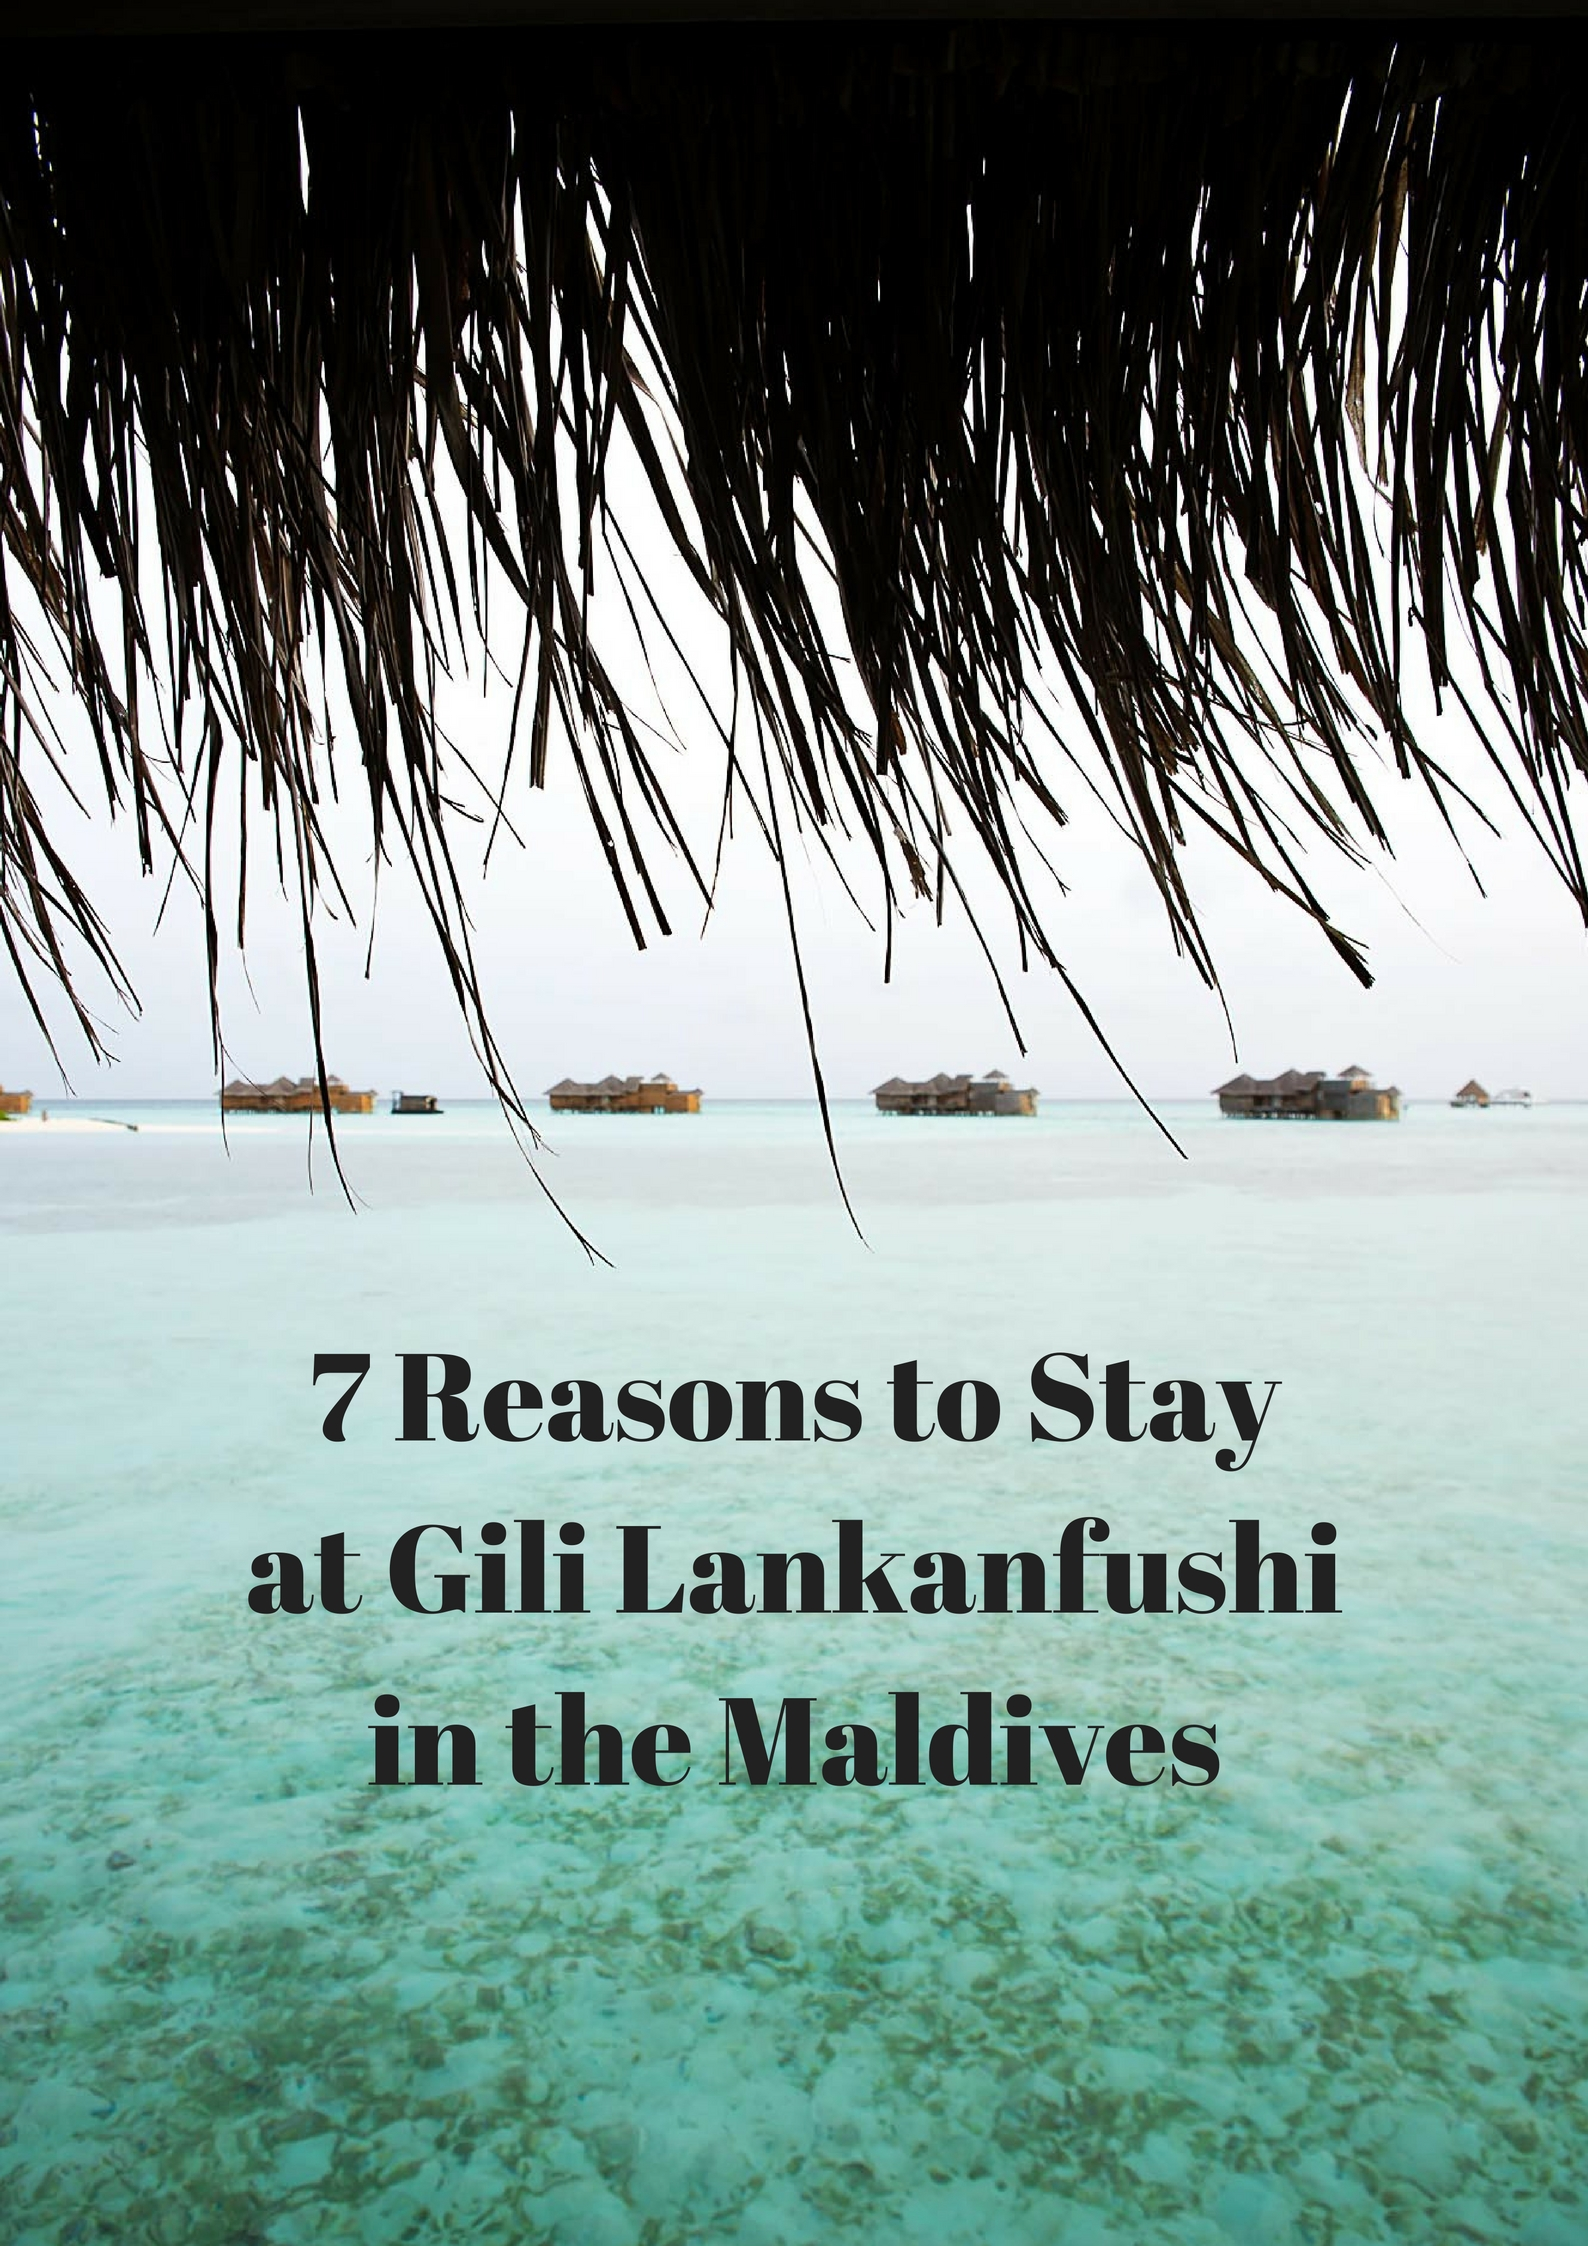 7 Reasons to Stay at Gili Lankanfushi in the Maldives